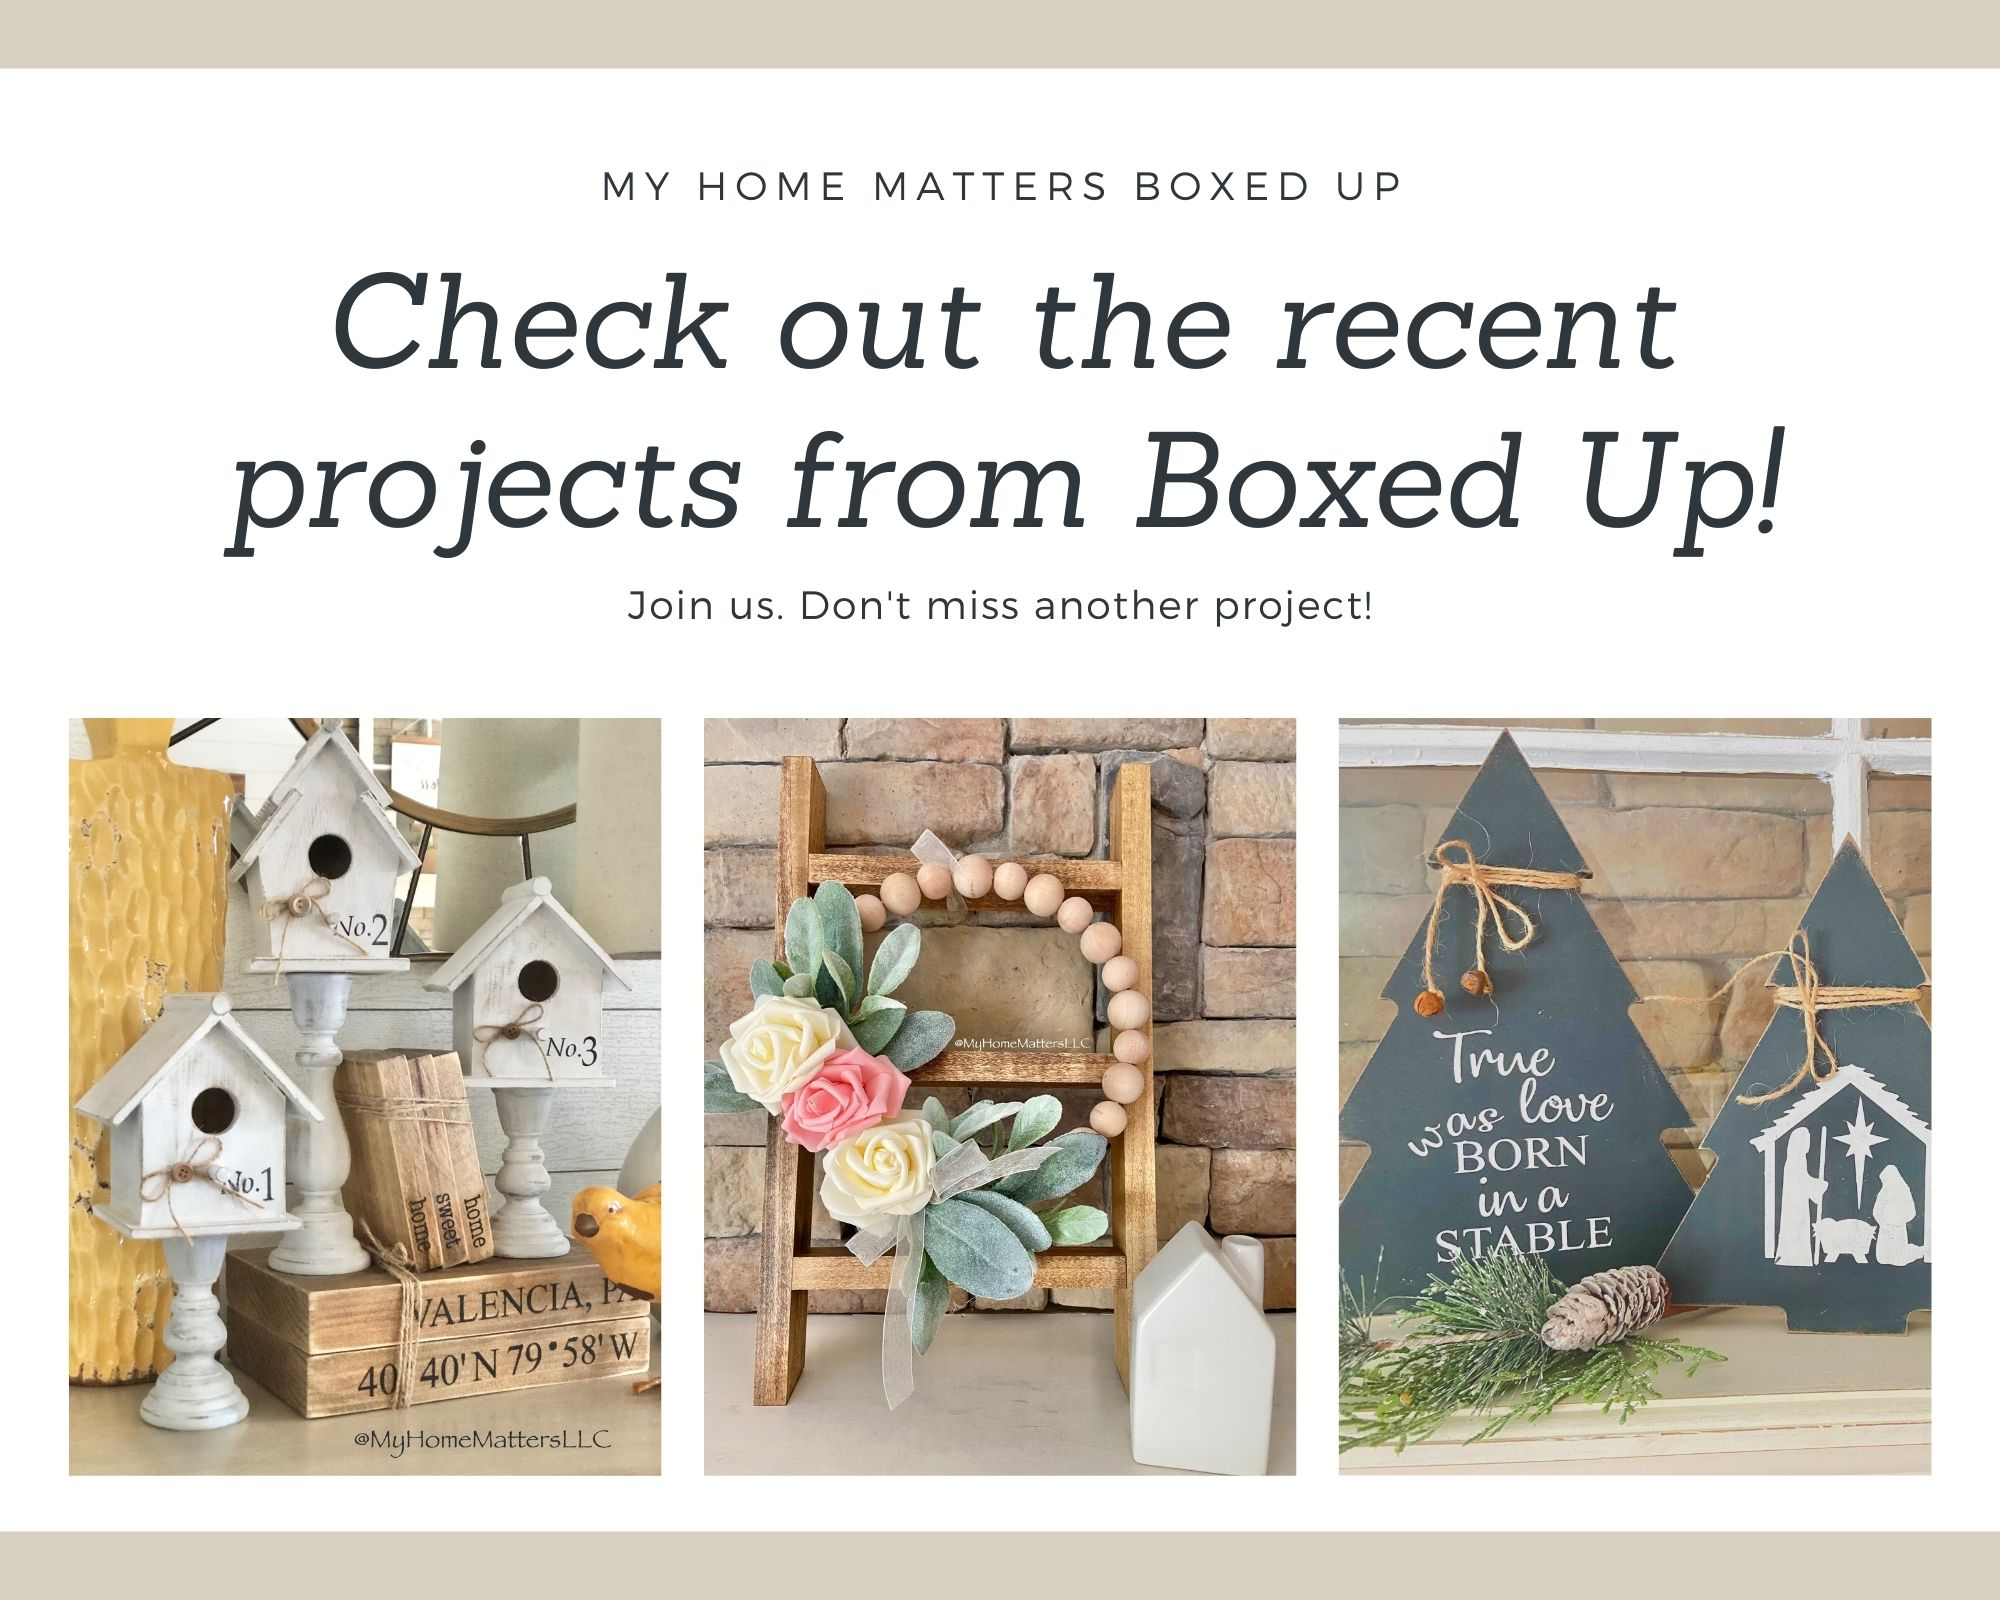 Check out the recent projects from Boxed Up! (3)